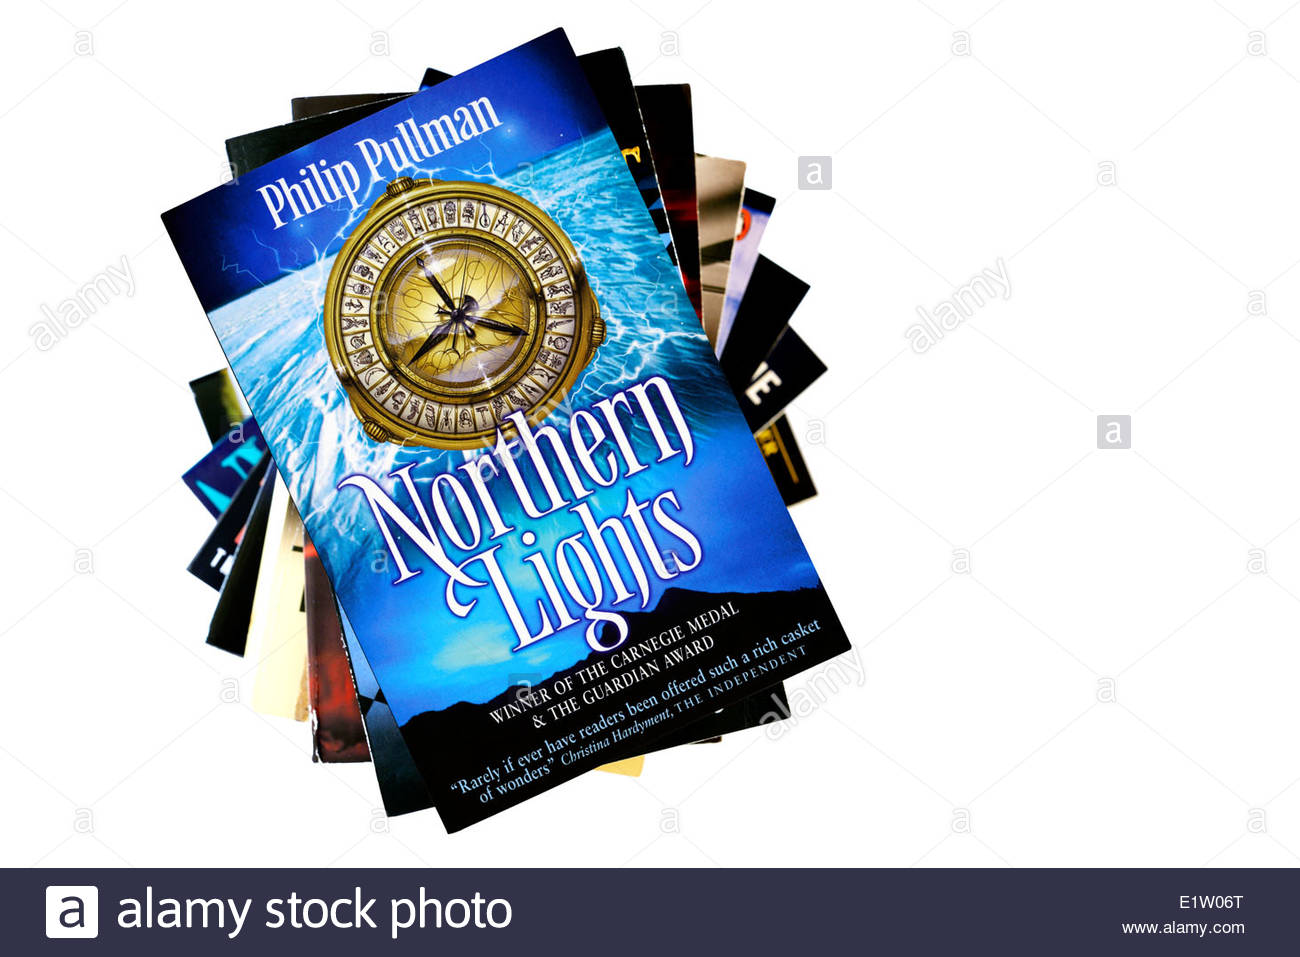 Phillip Pullman, Northern Lights, paperback title stacked used books, England - Stock Image